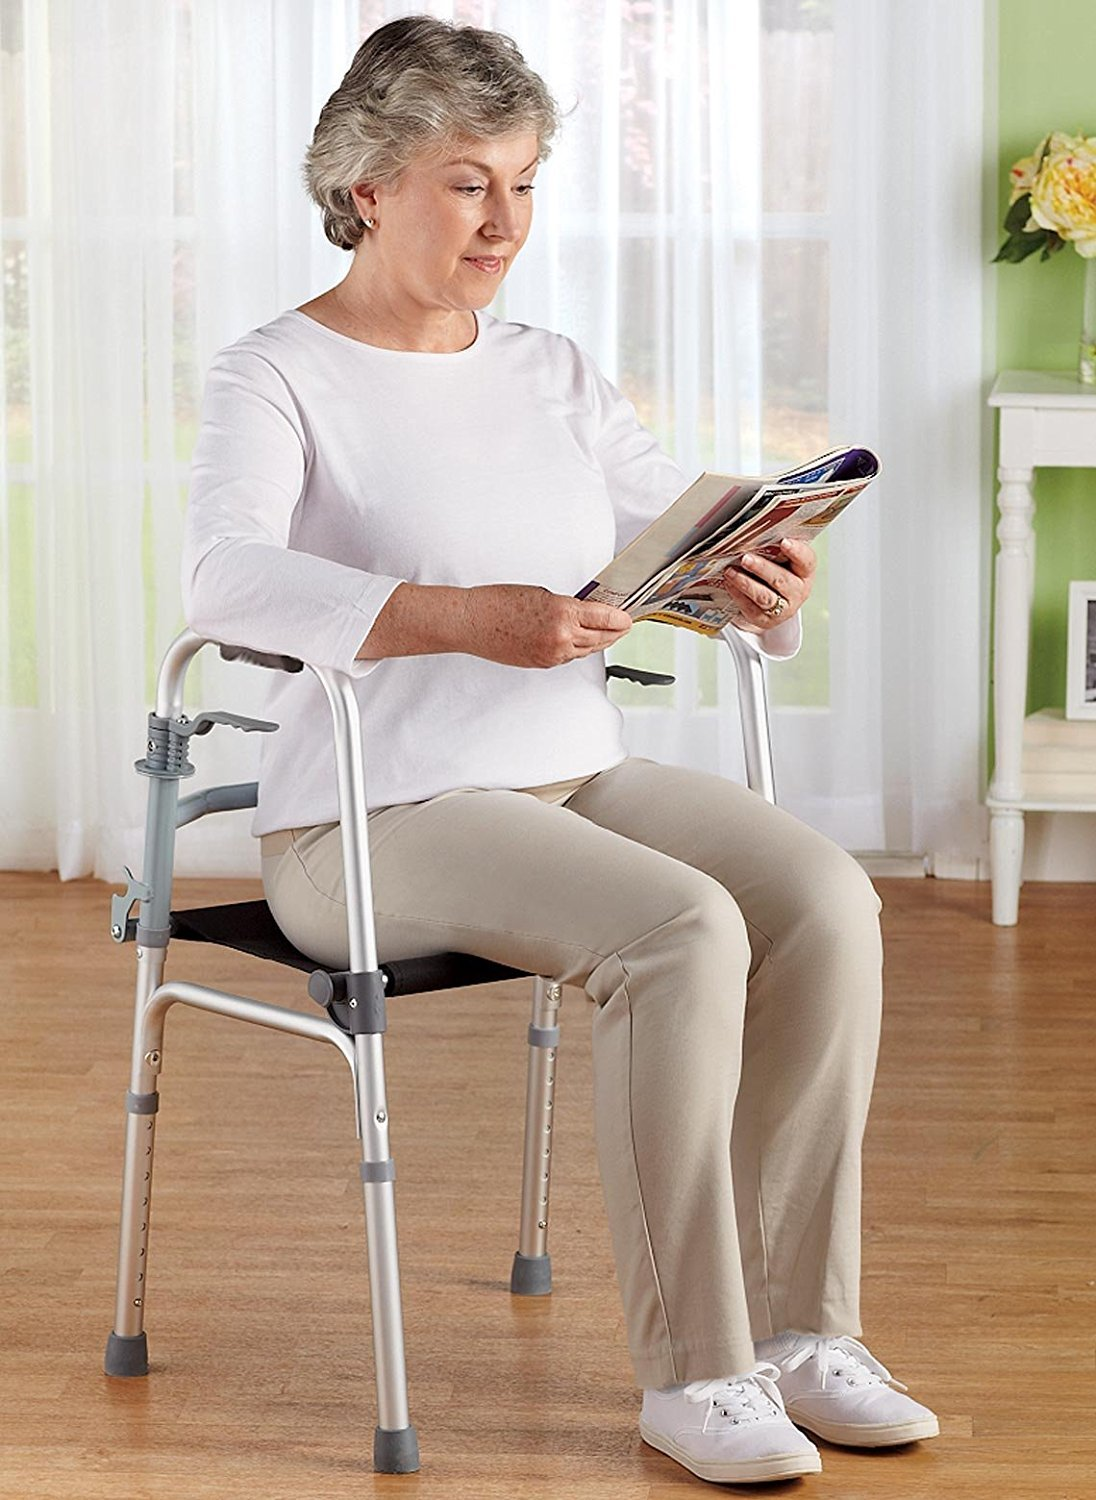 BodyHealt Adjustable Height Walker With Seat - Trigger Release - Folding Walker